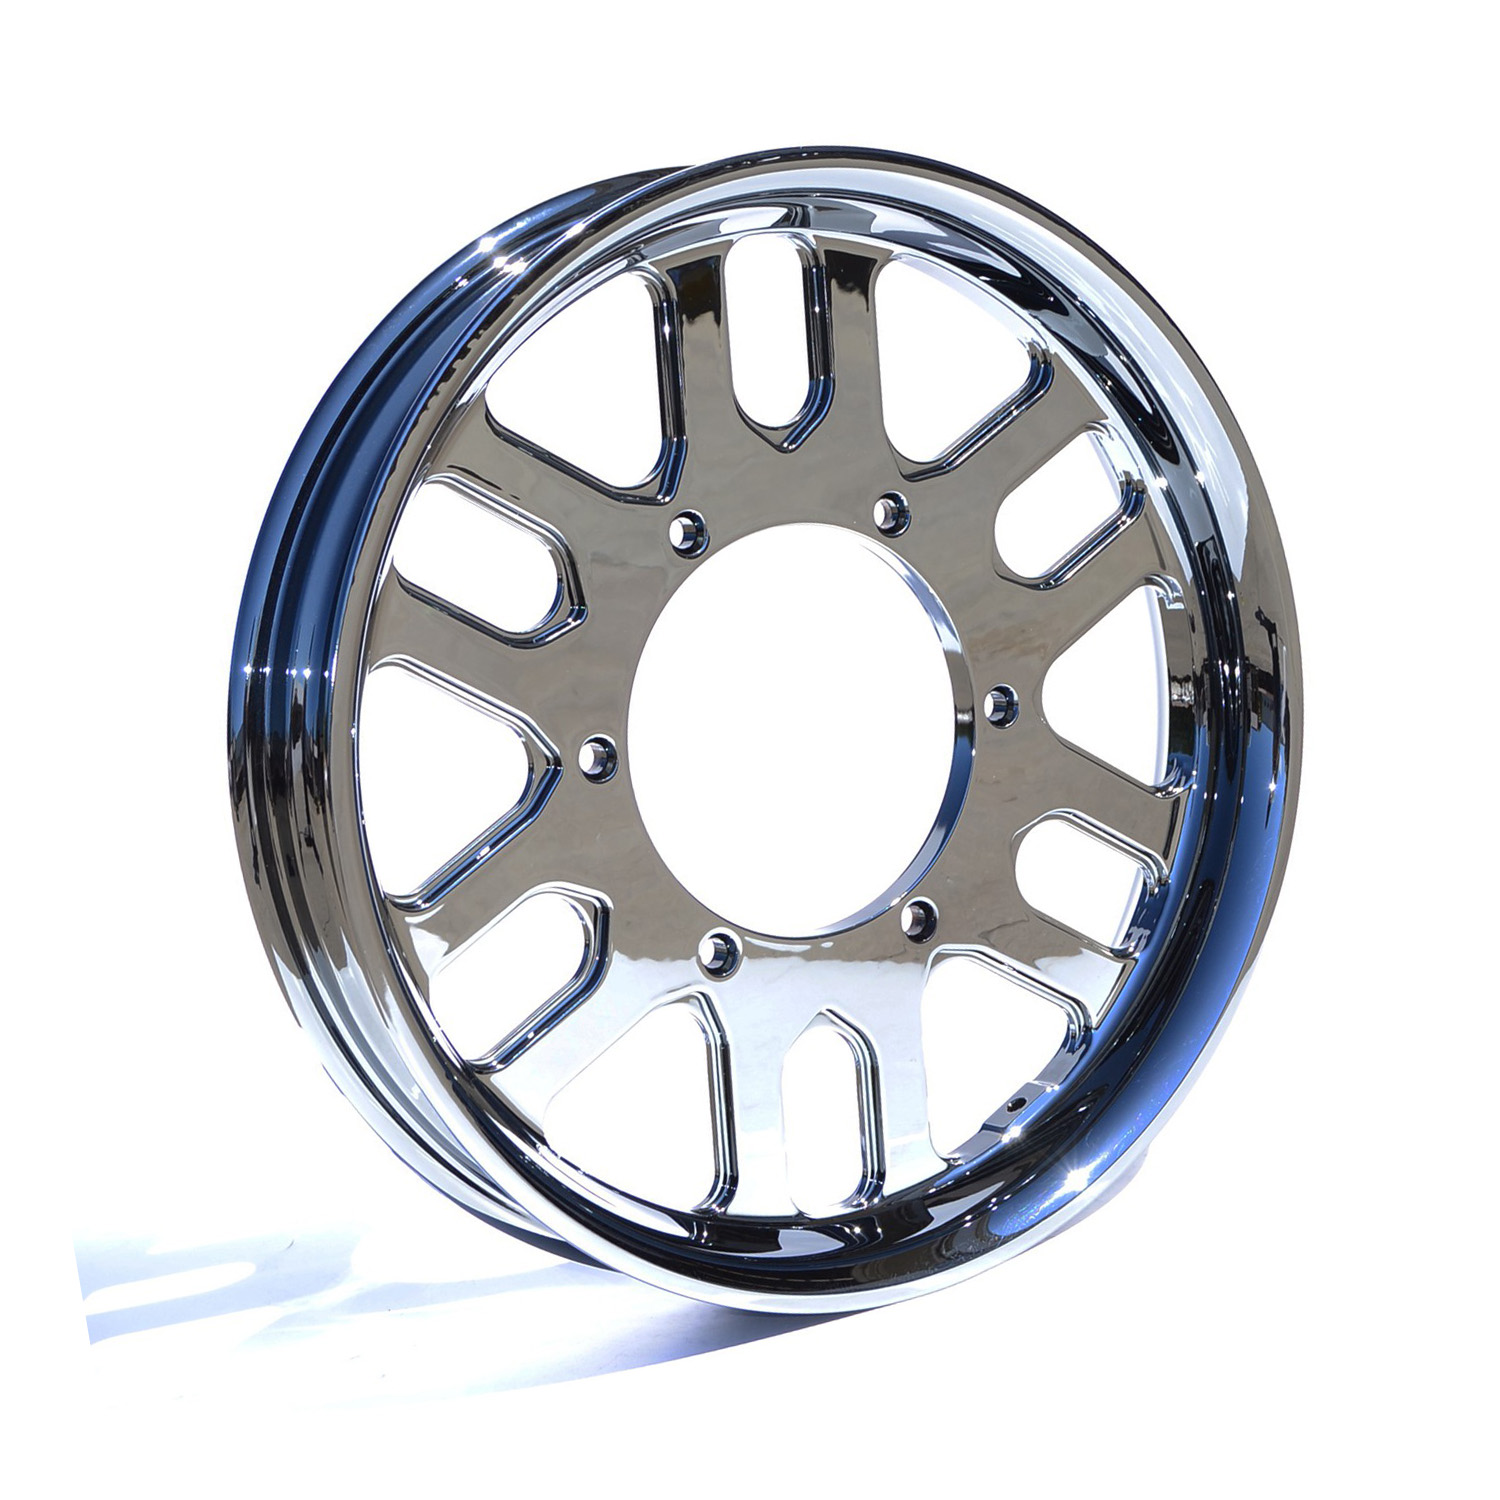 JD037 18x3.0 Forged Motorcycel Wheel 01